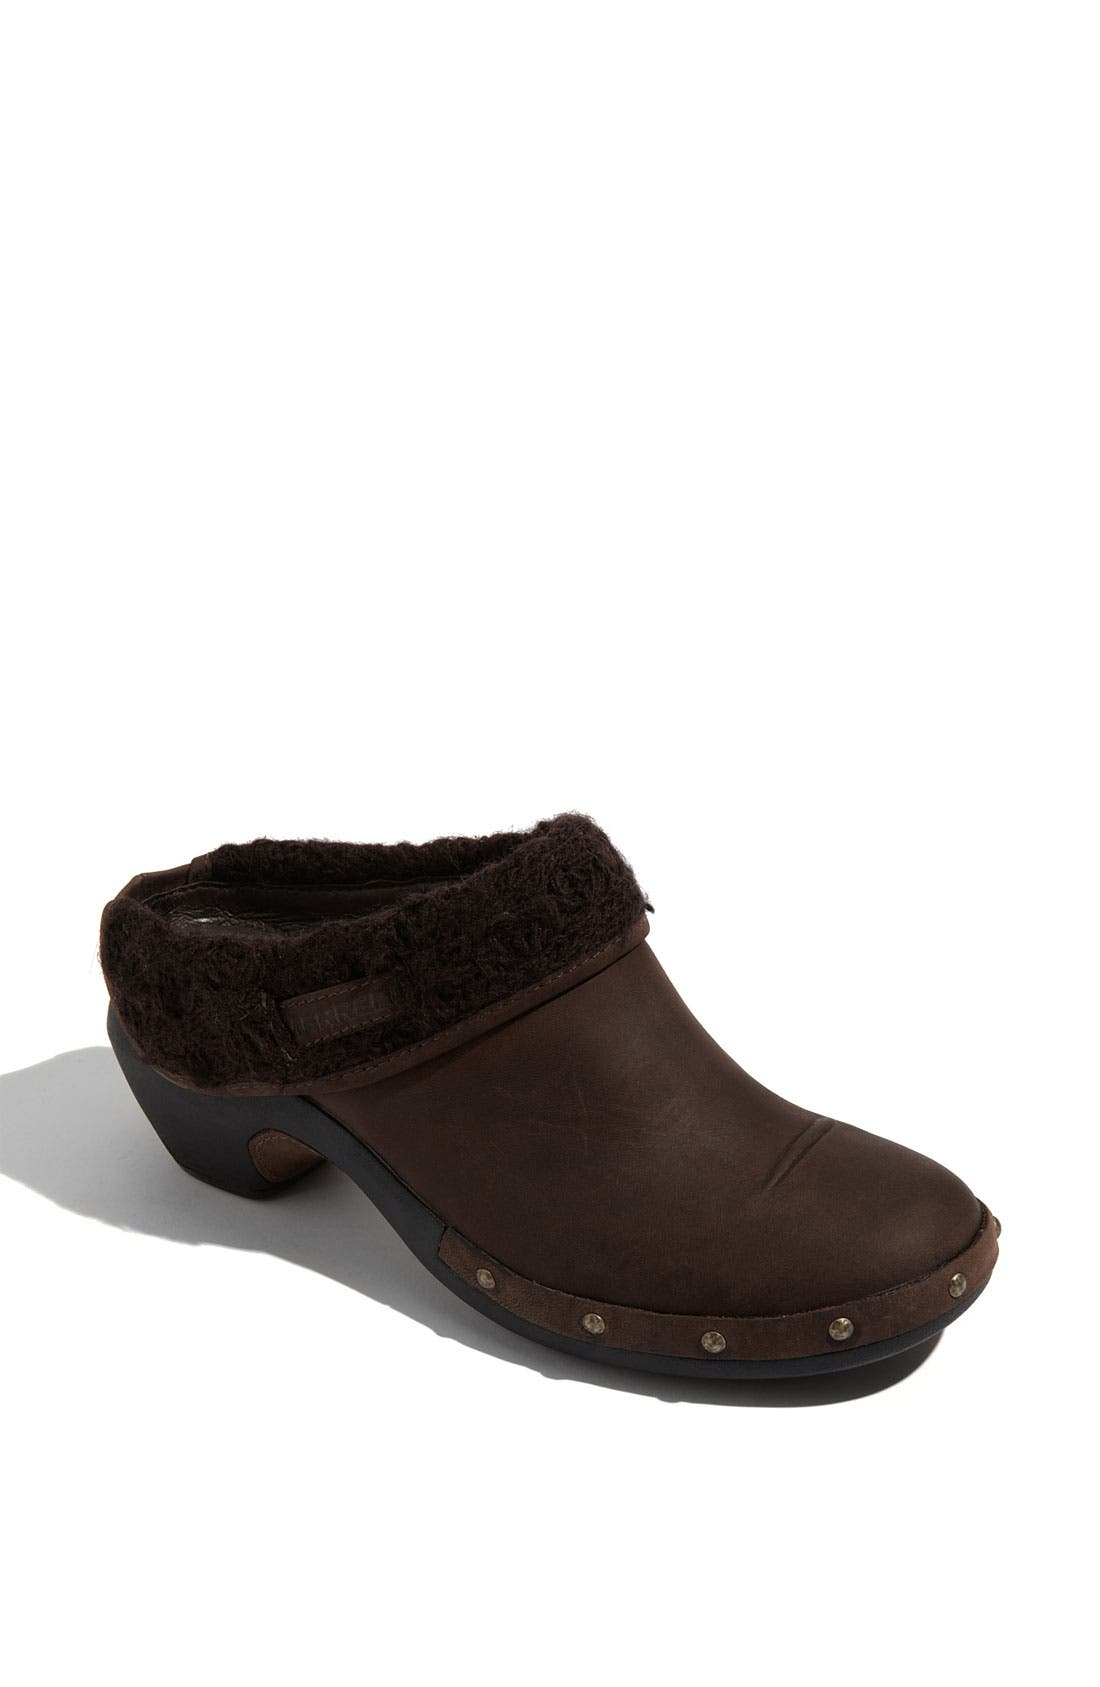 Main Image - Merrell Knit Trim Clog